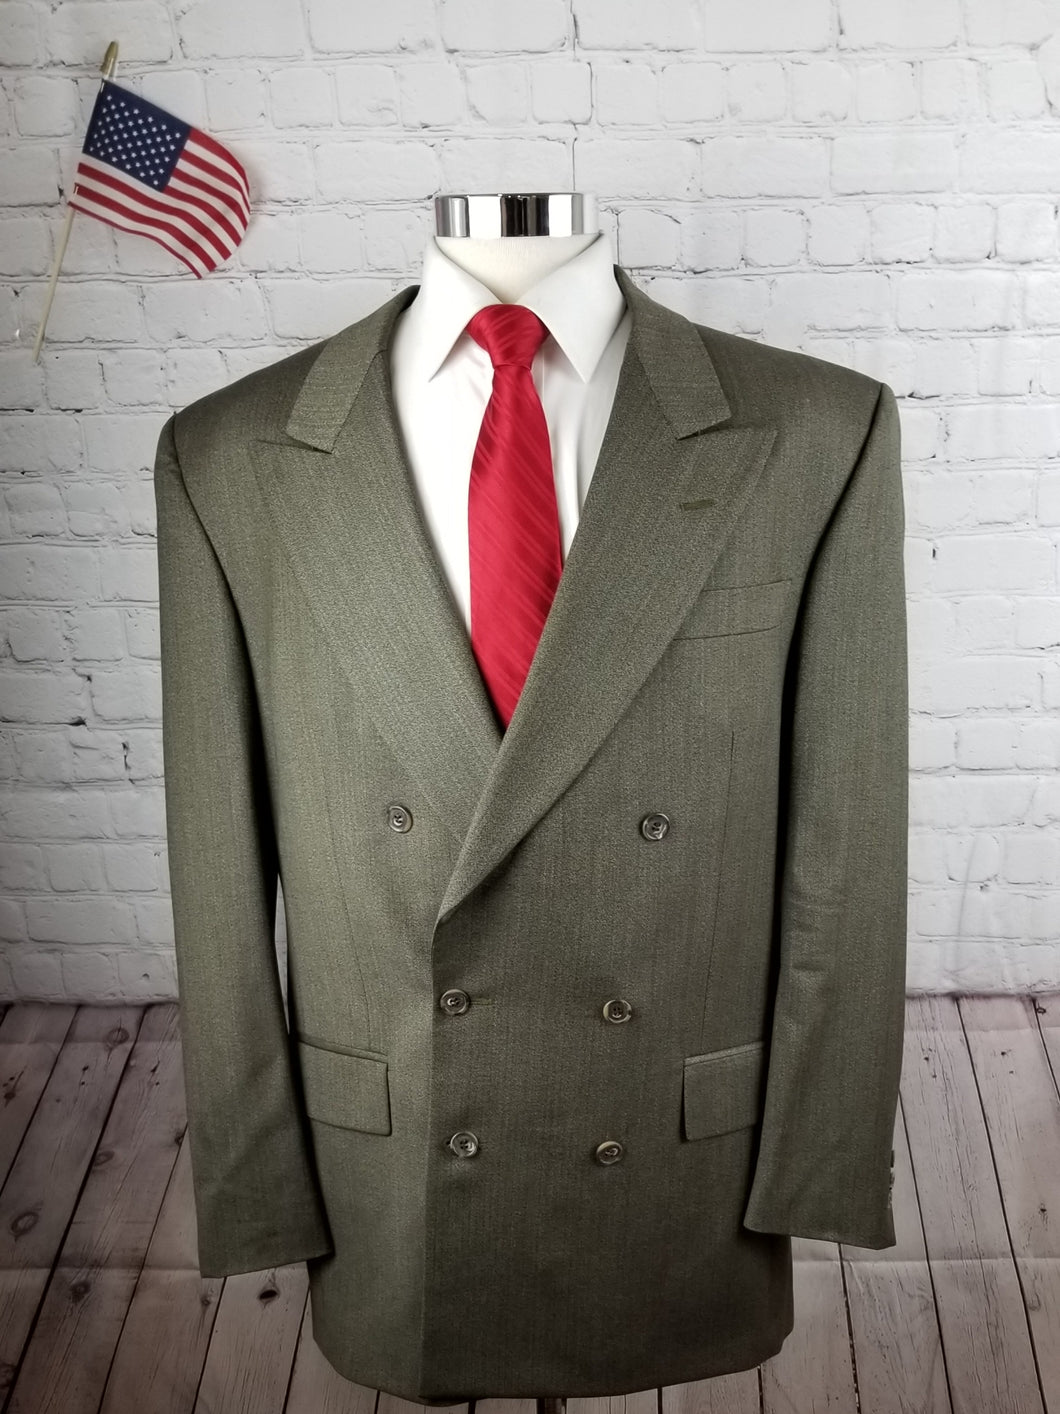 Vito Rofolo Green Textured Wool Suit 46L Pants 32X30 $475